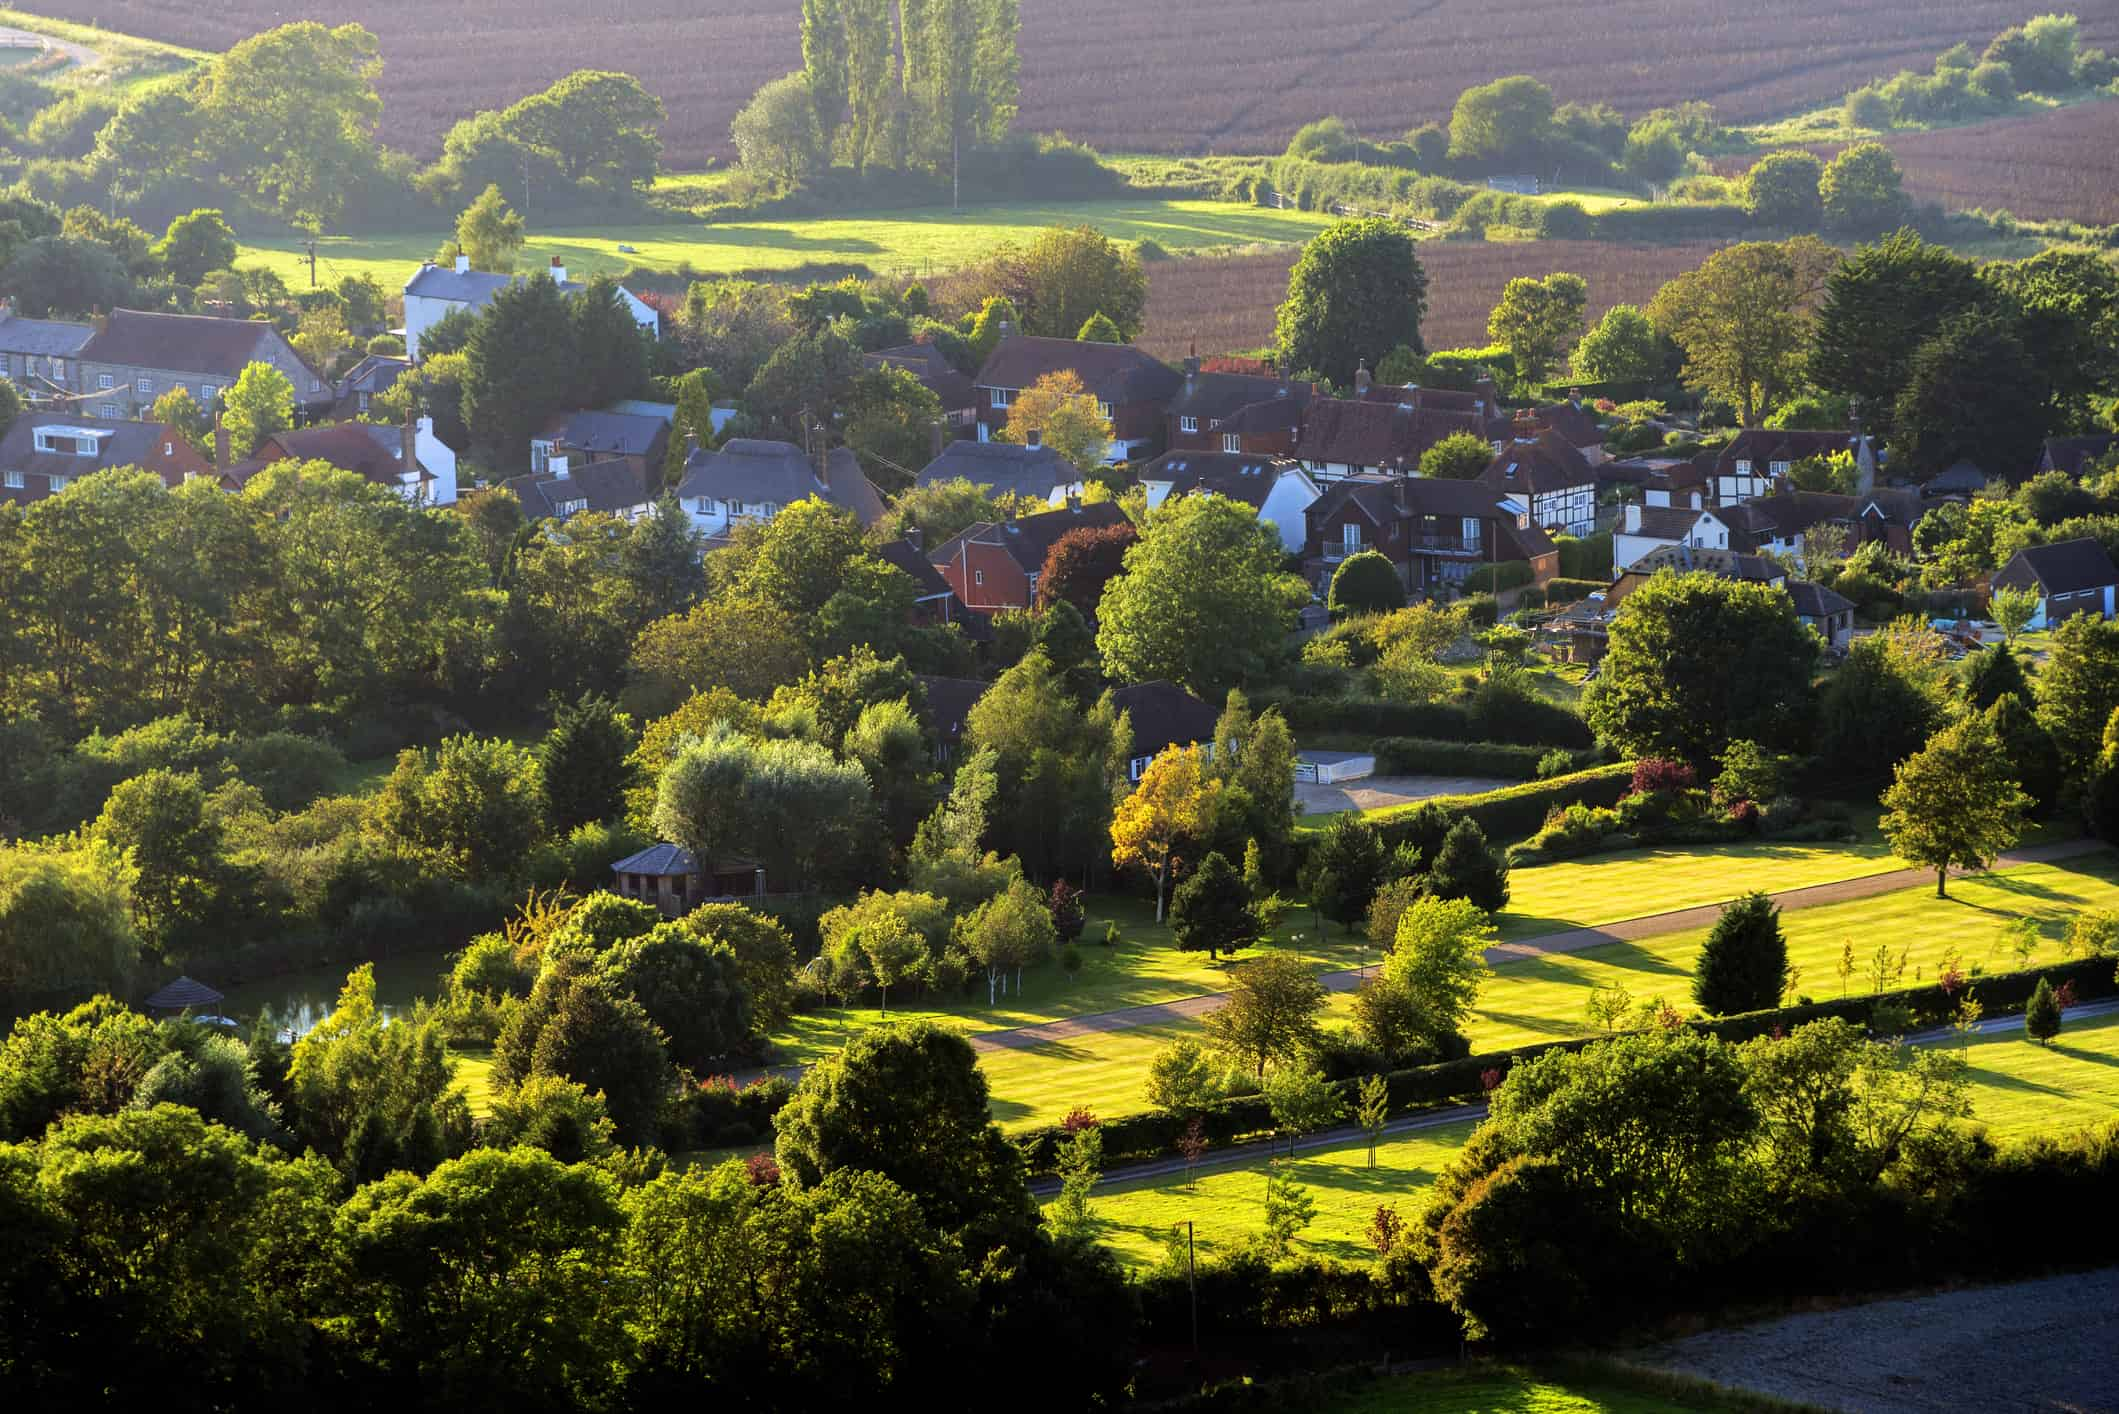 A Village in the South Downs, England, UK